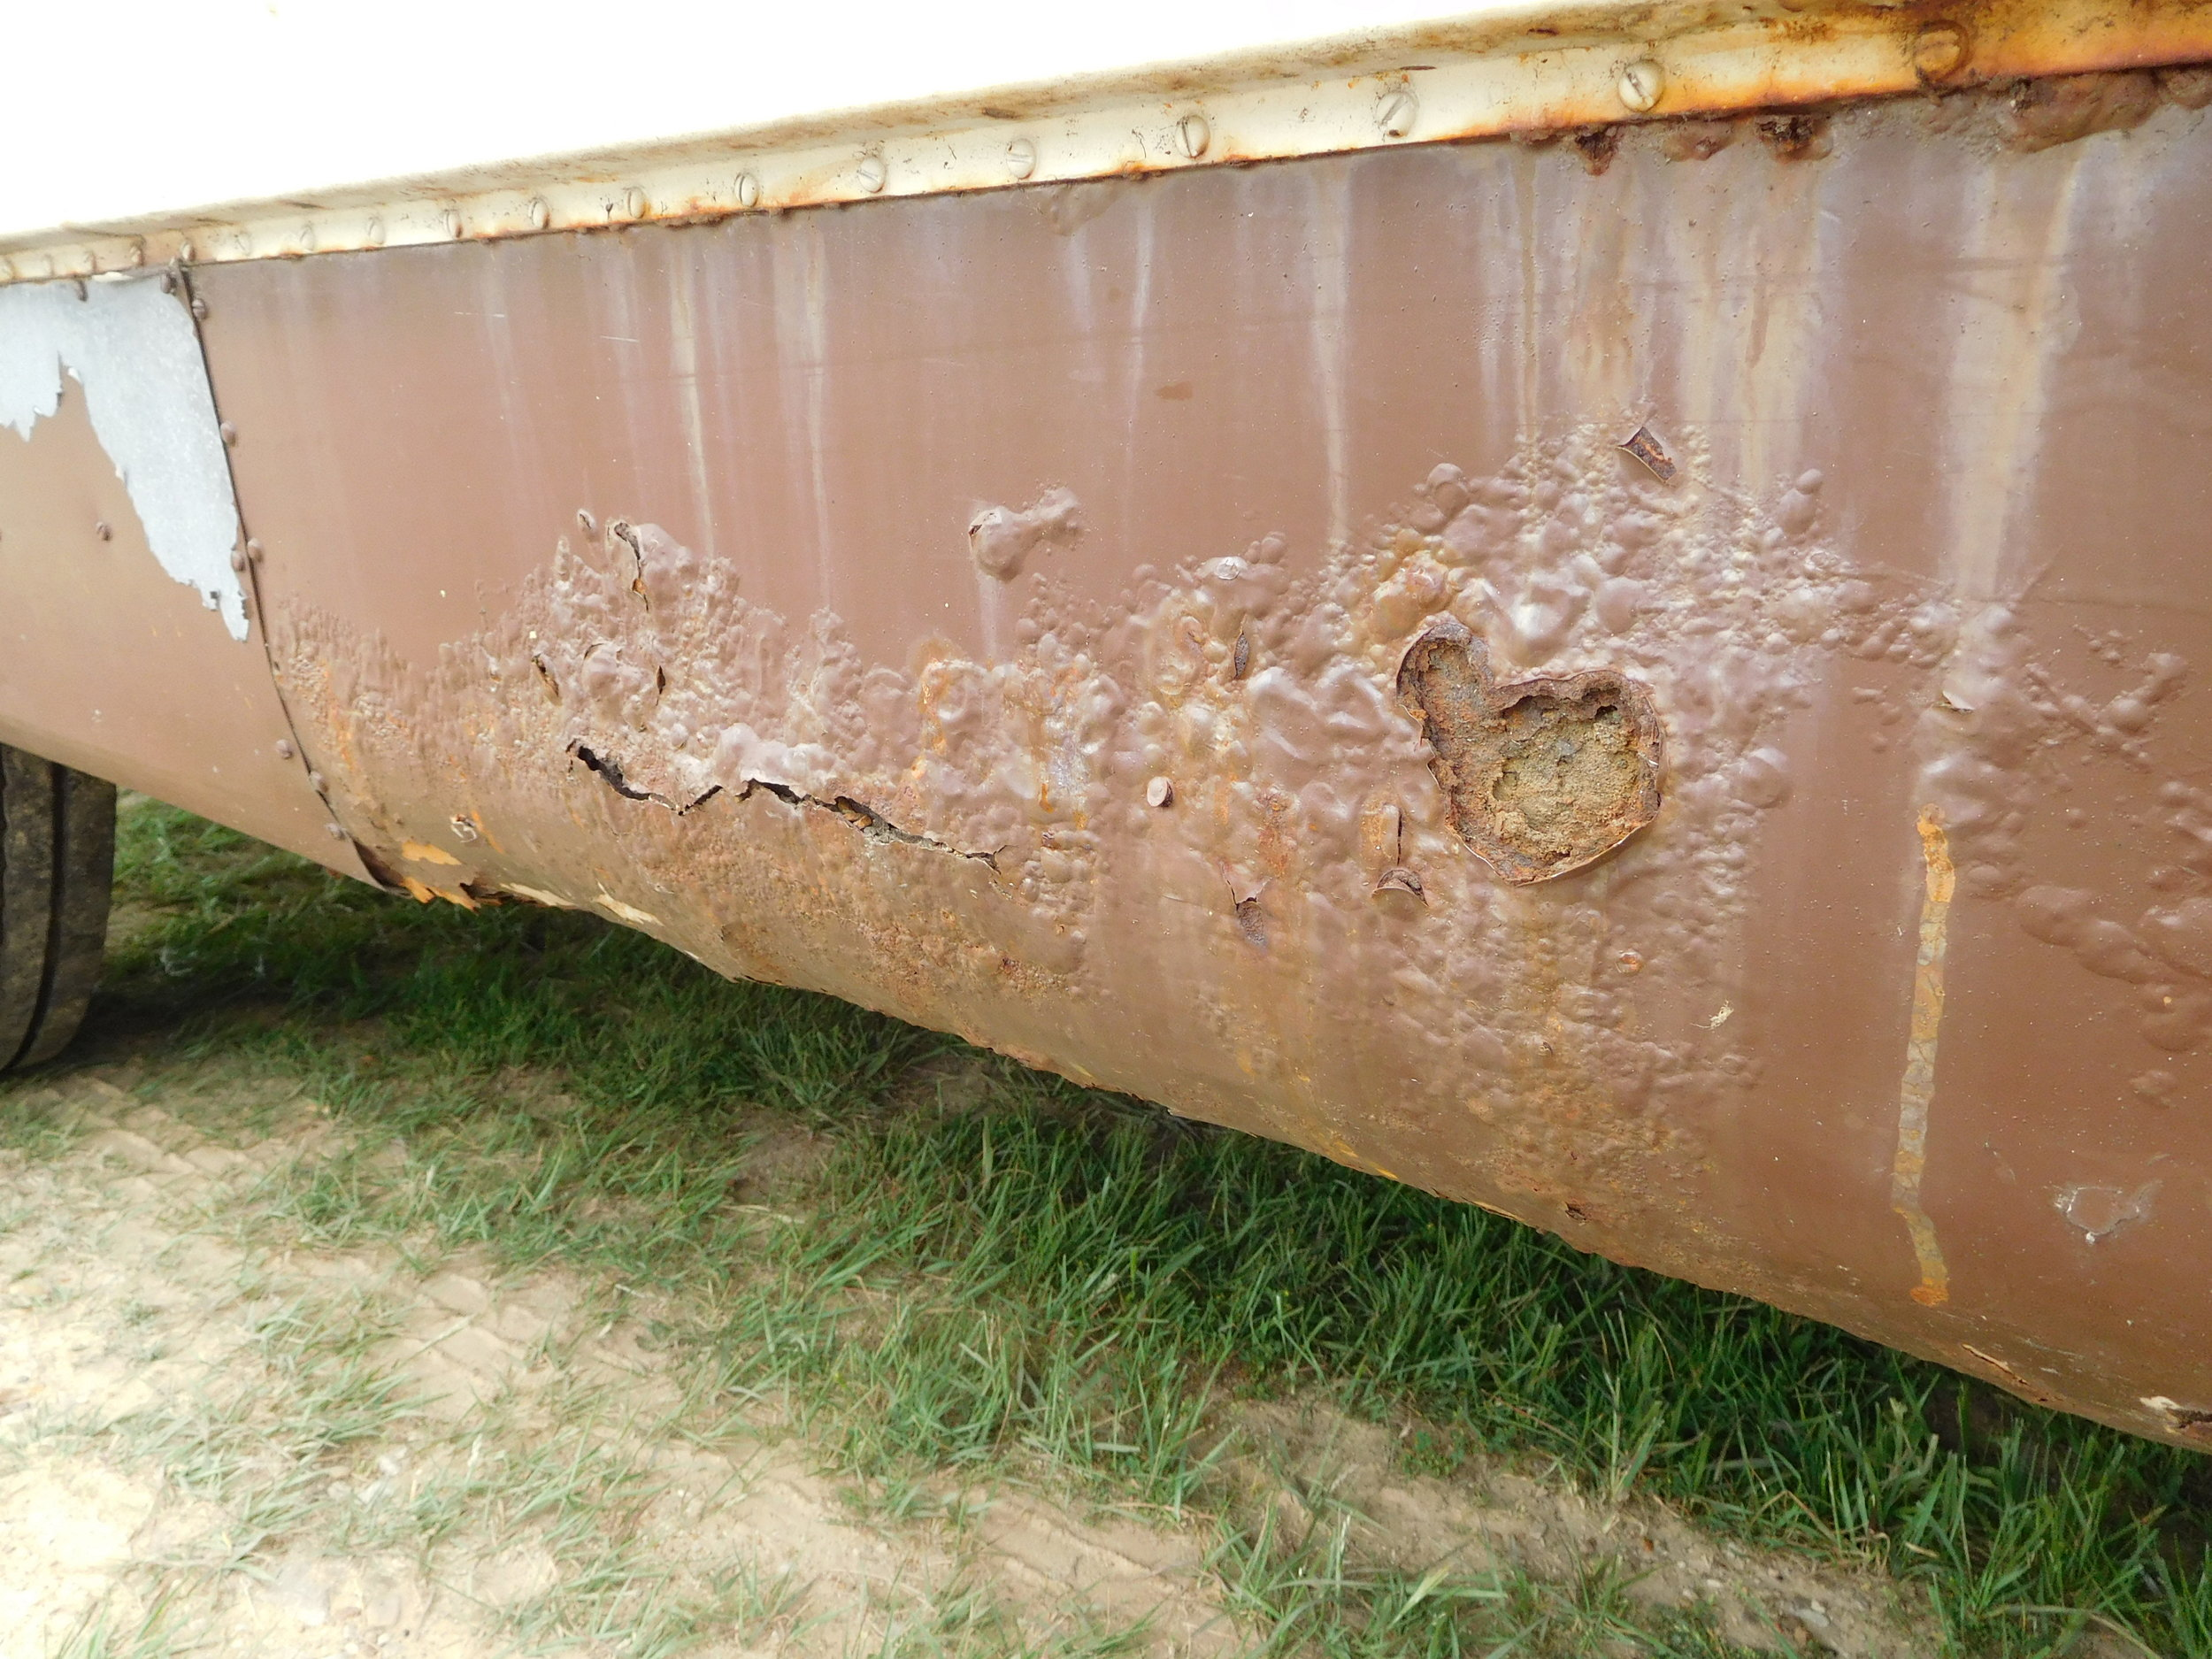 Some corrosion is expected, the side skins will be removed allowing the depth of the corrosion to be revealed.